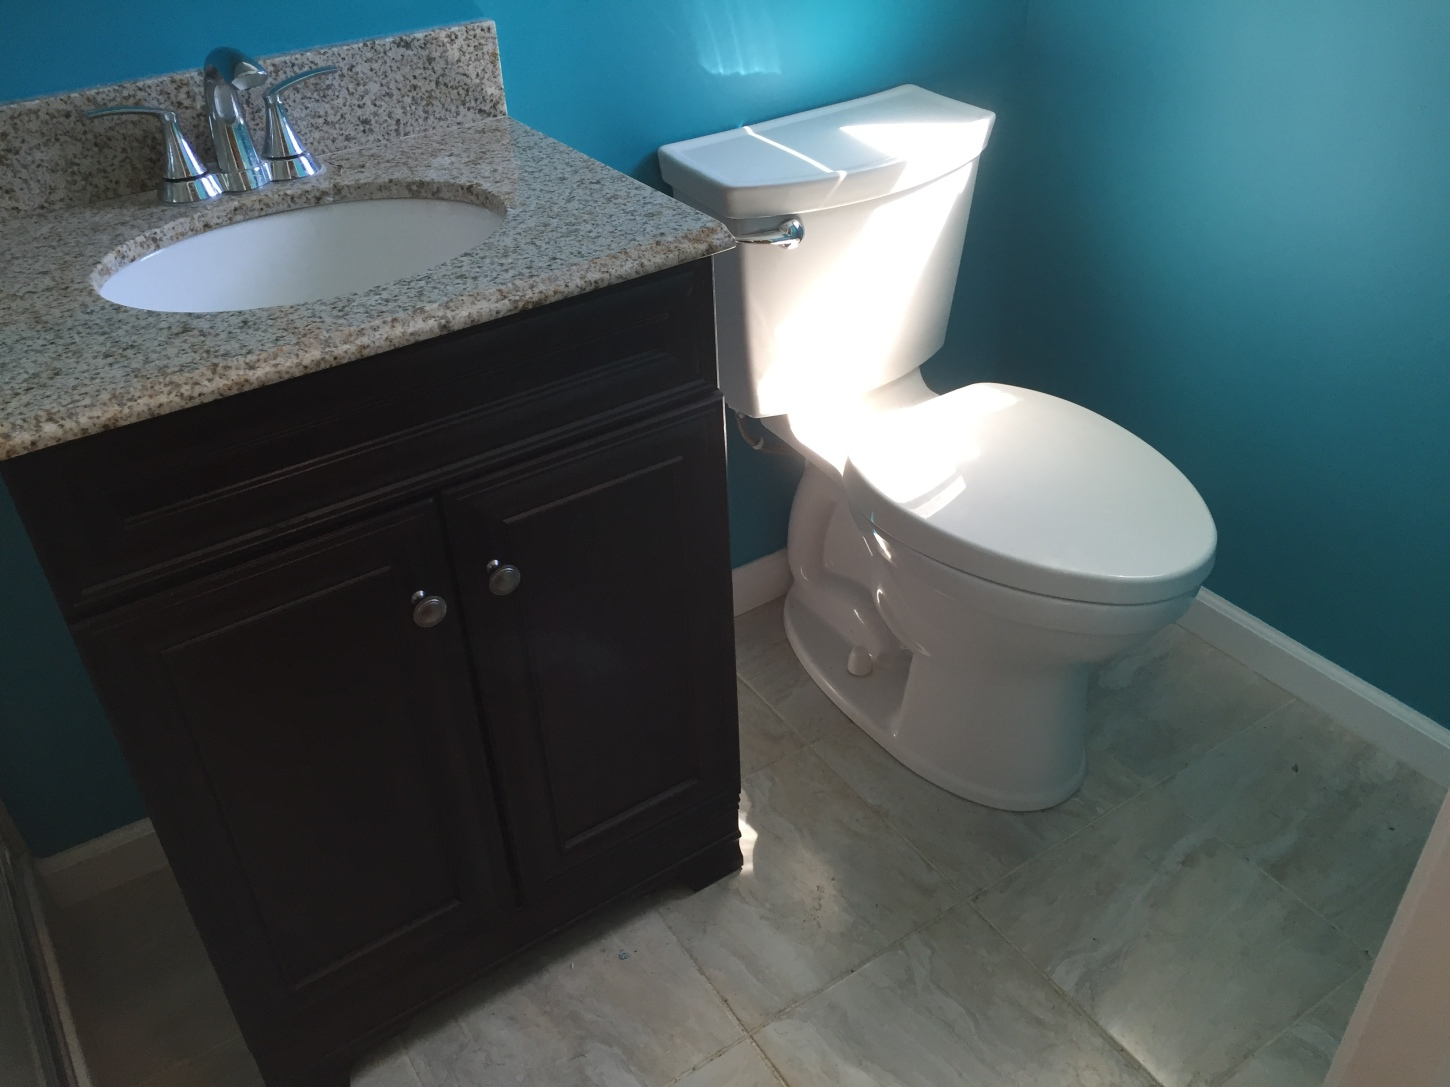 Kitchen Remodeling And Bath Remodeling Brothers Remodeling Group - Bathroom remodeling fairfield ct